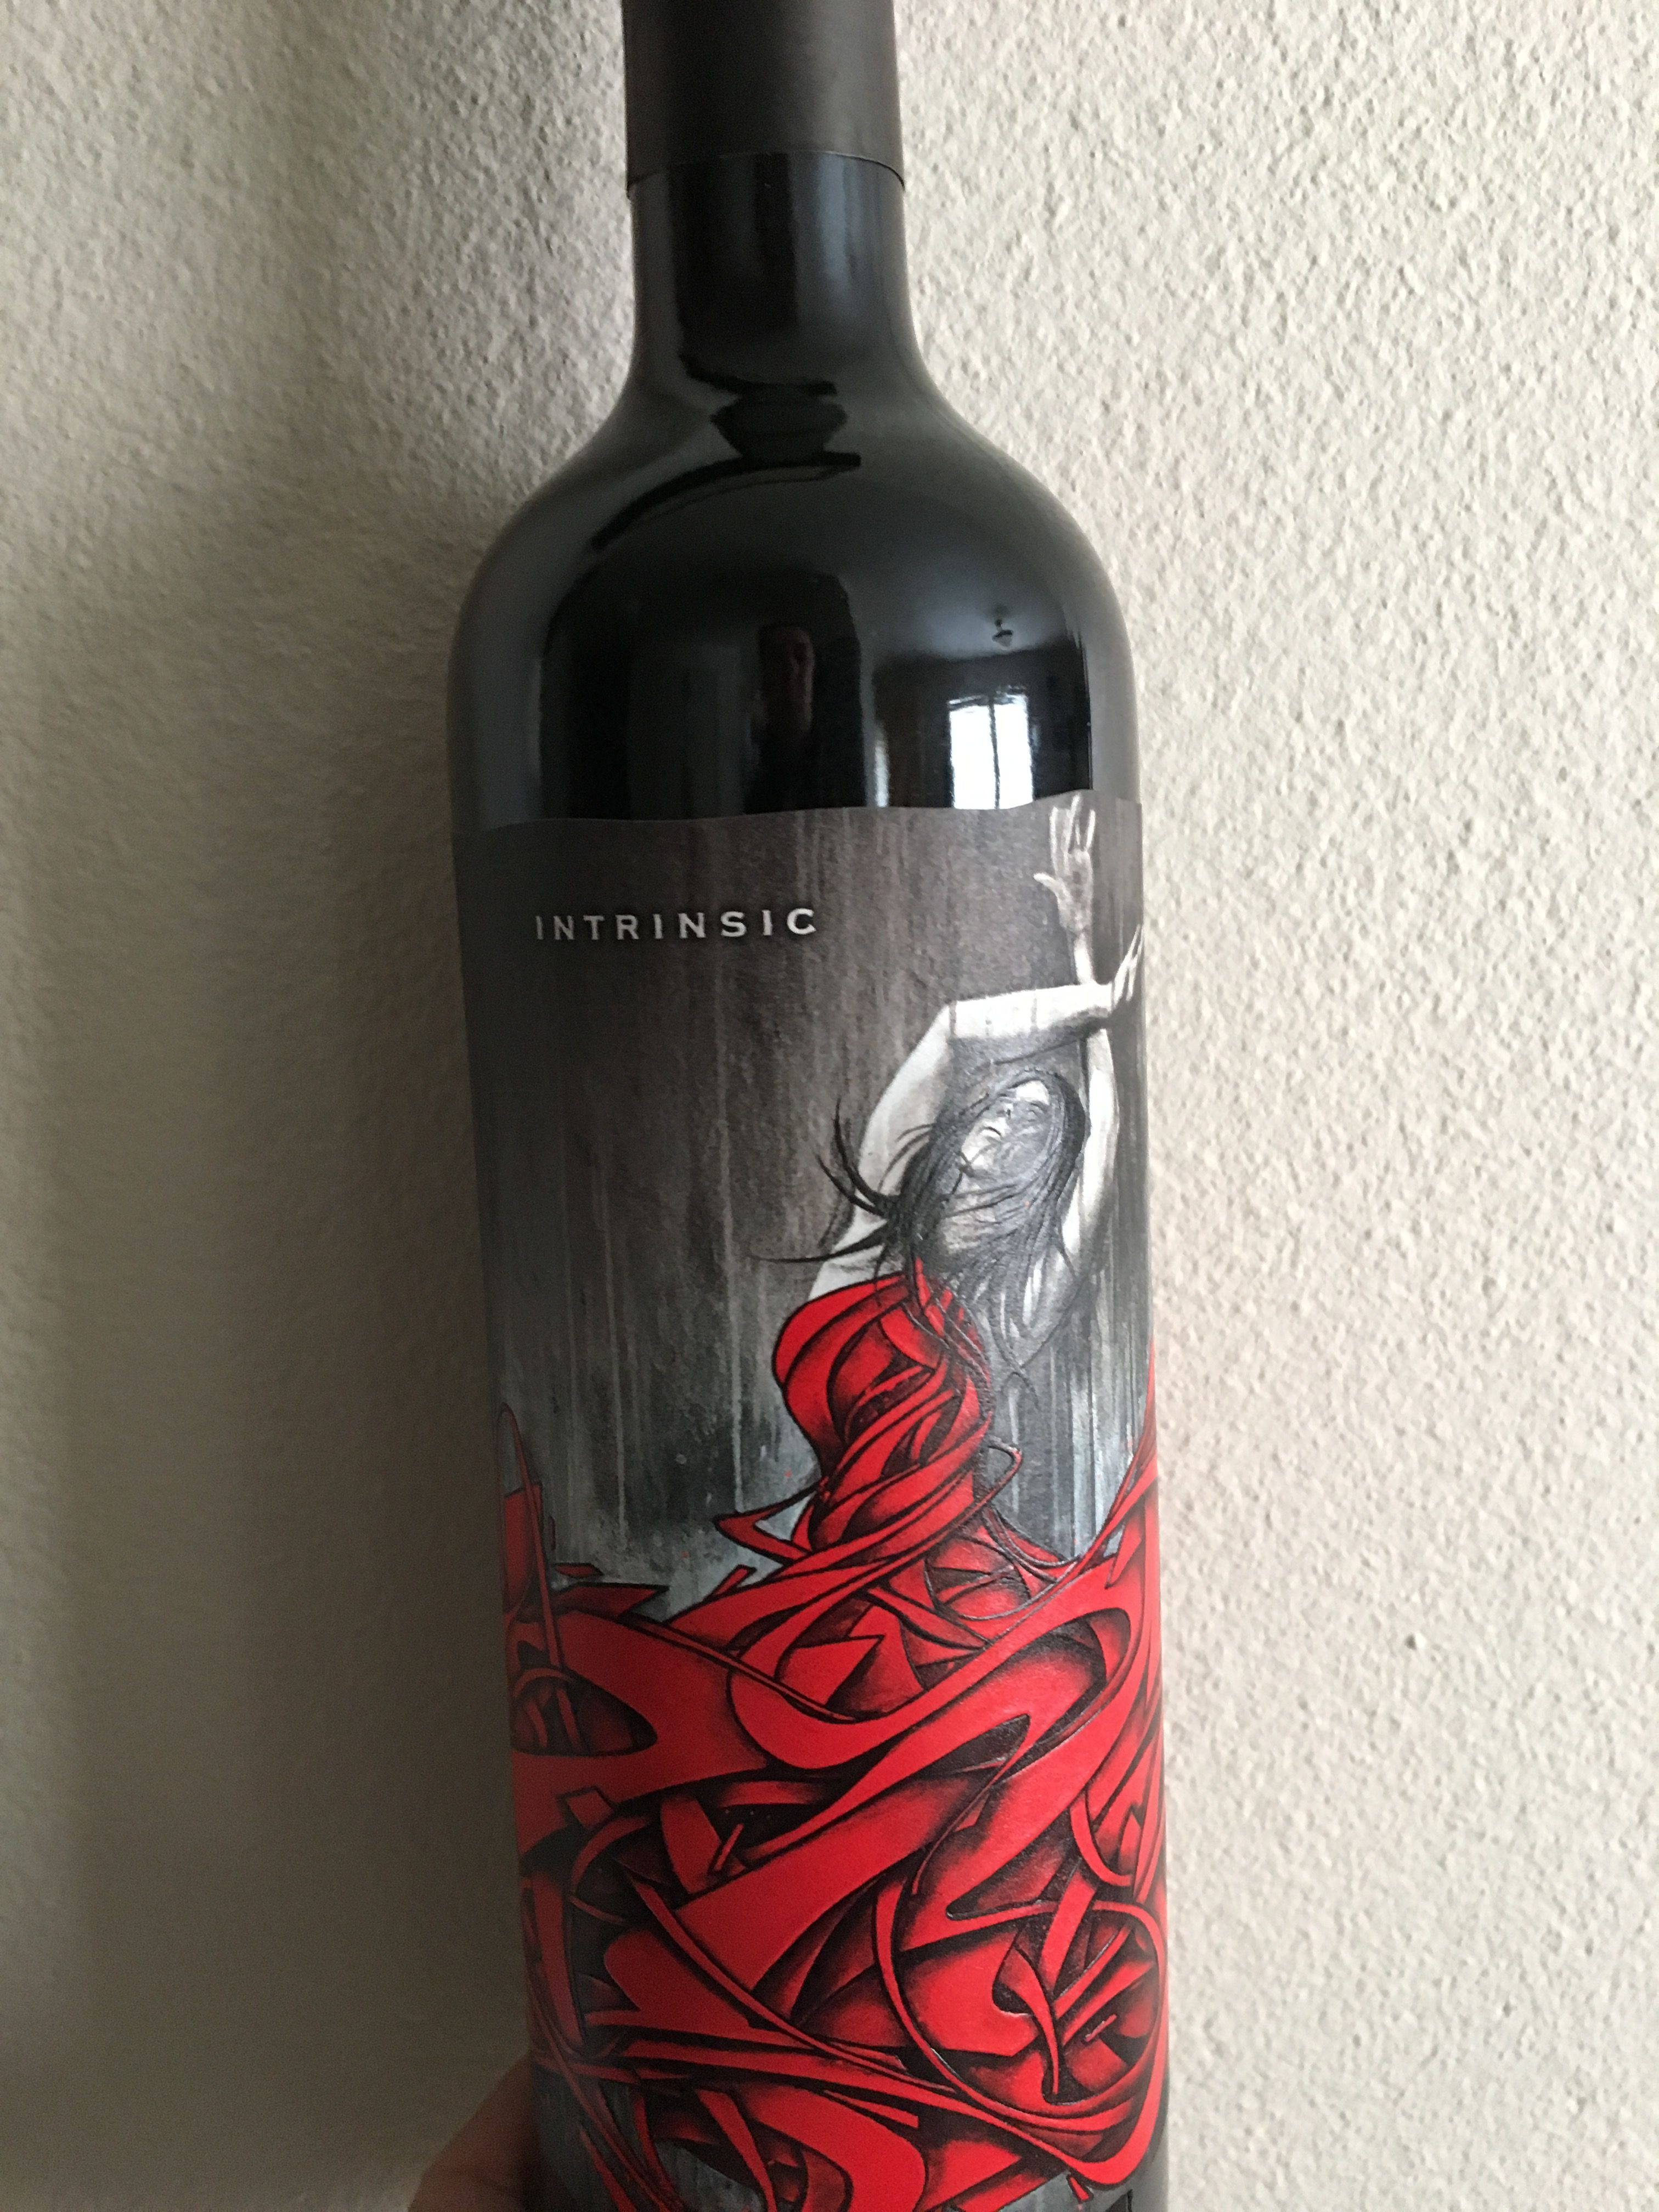 Intrinsic Cabernet Sauvignon 2015 At Safeway 20 Was Rated In Top 100 2015 Very Good Slightly Sweet At First With Smo Wine Label Maker Malbec Wine Wine Top